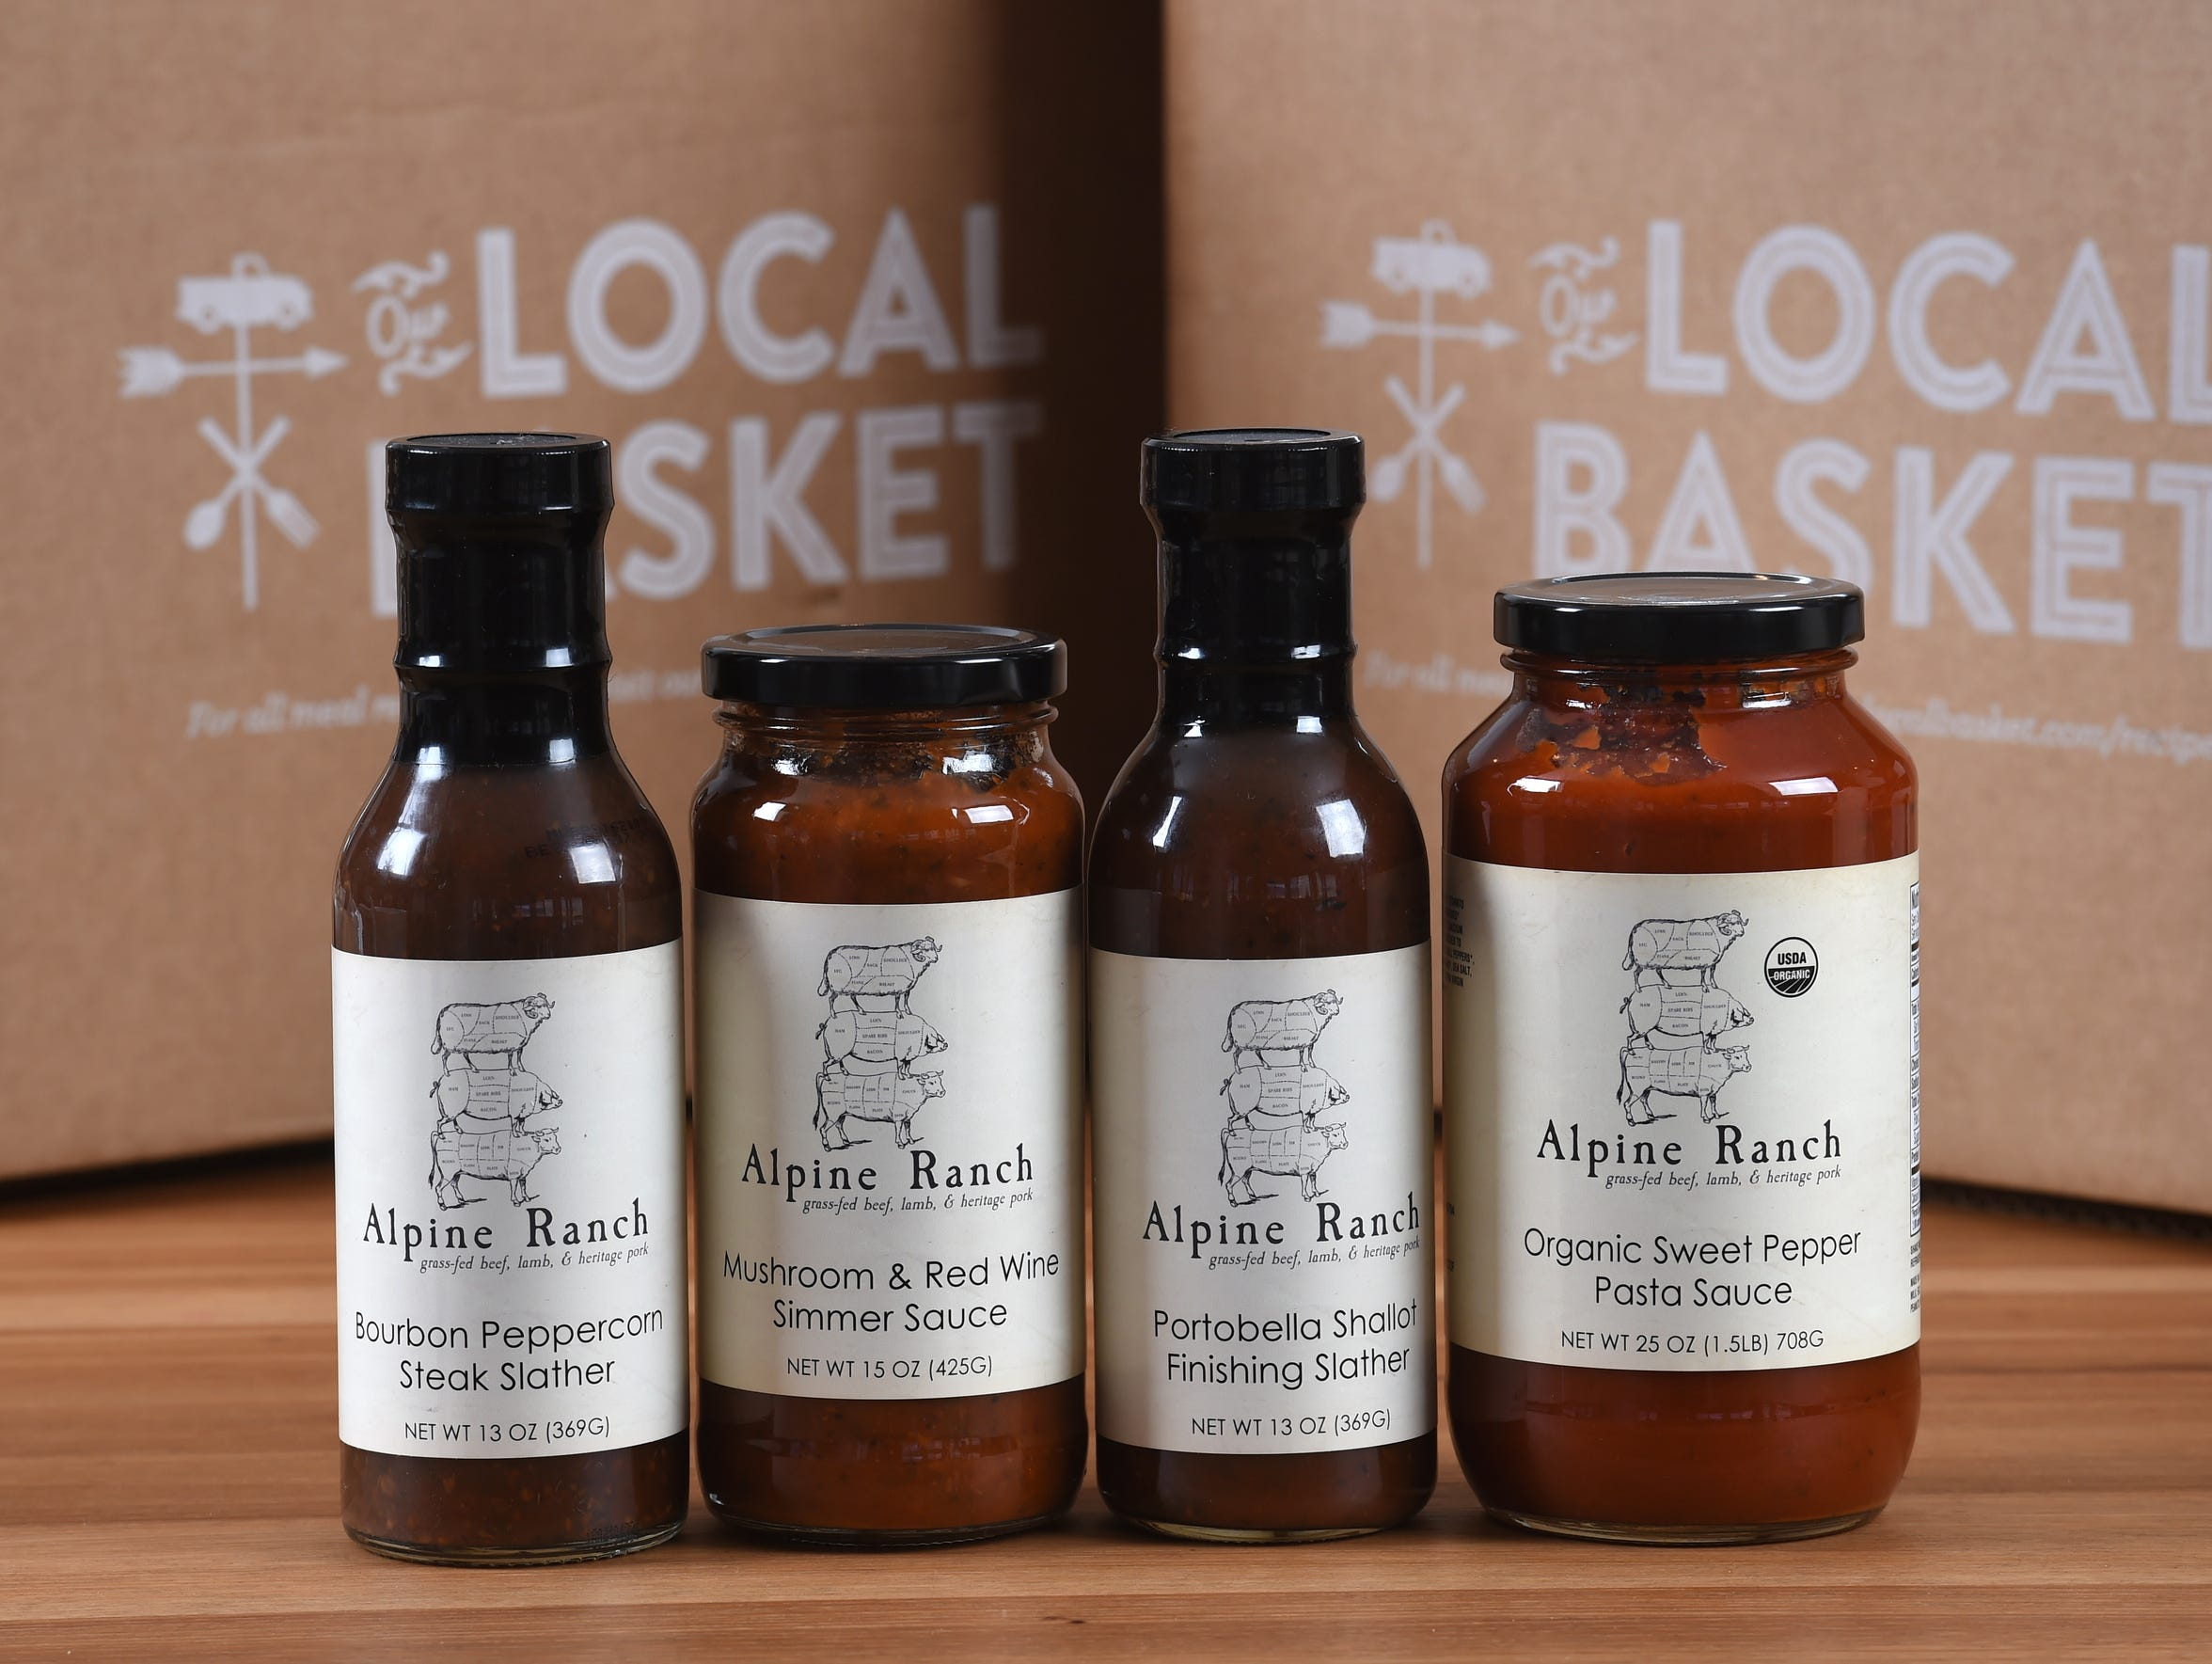 The add-on products for Our Local Basket meal delivery